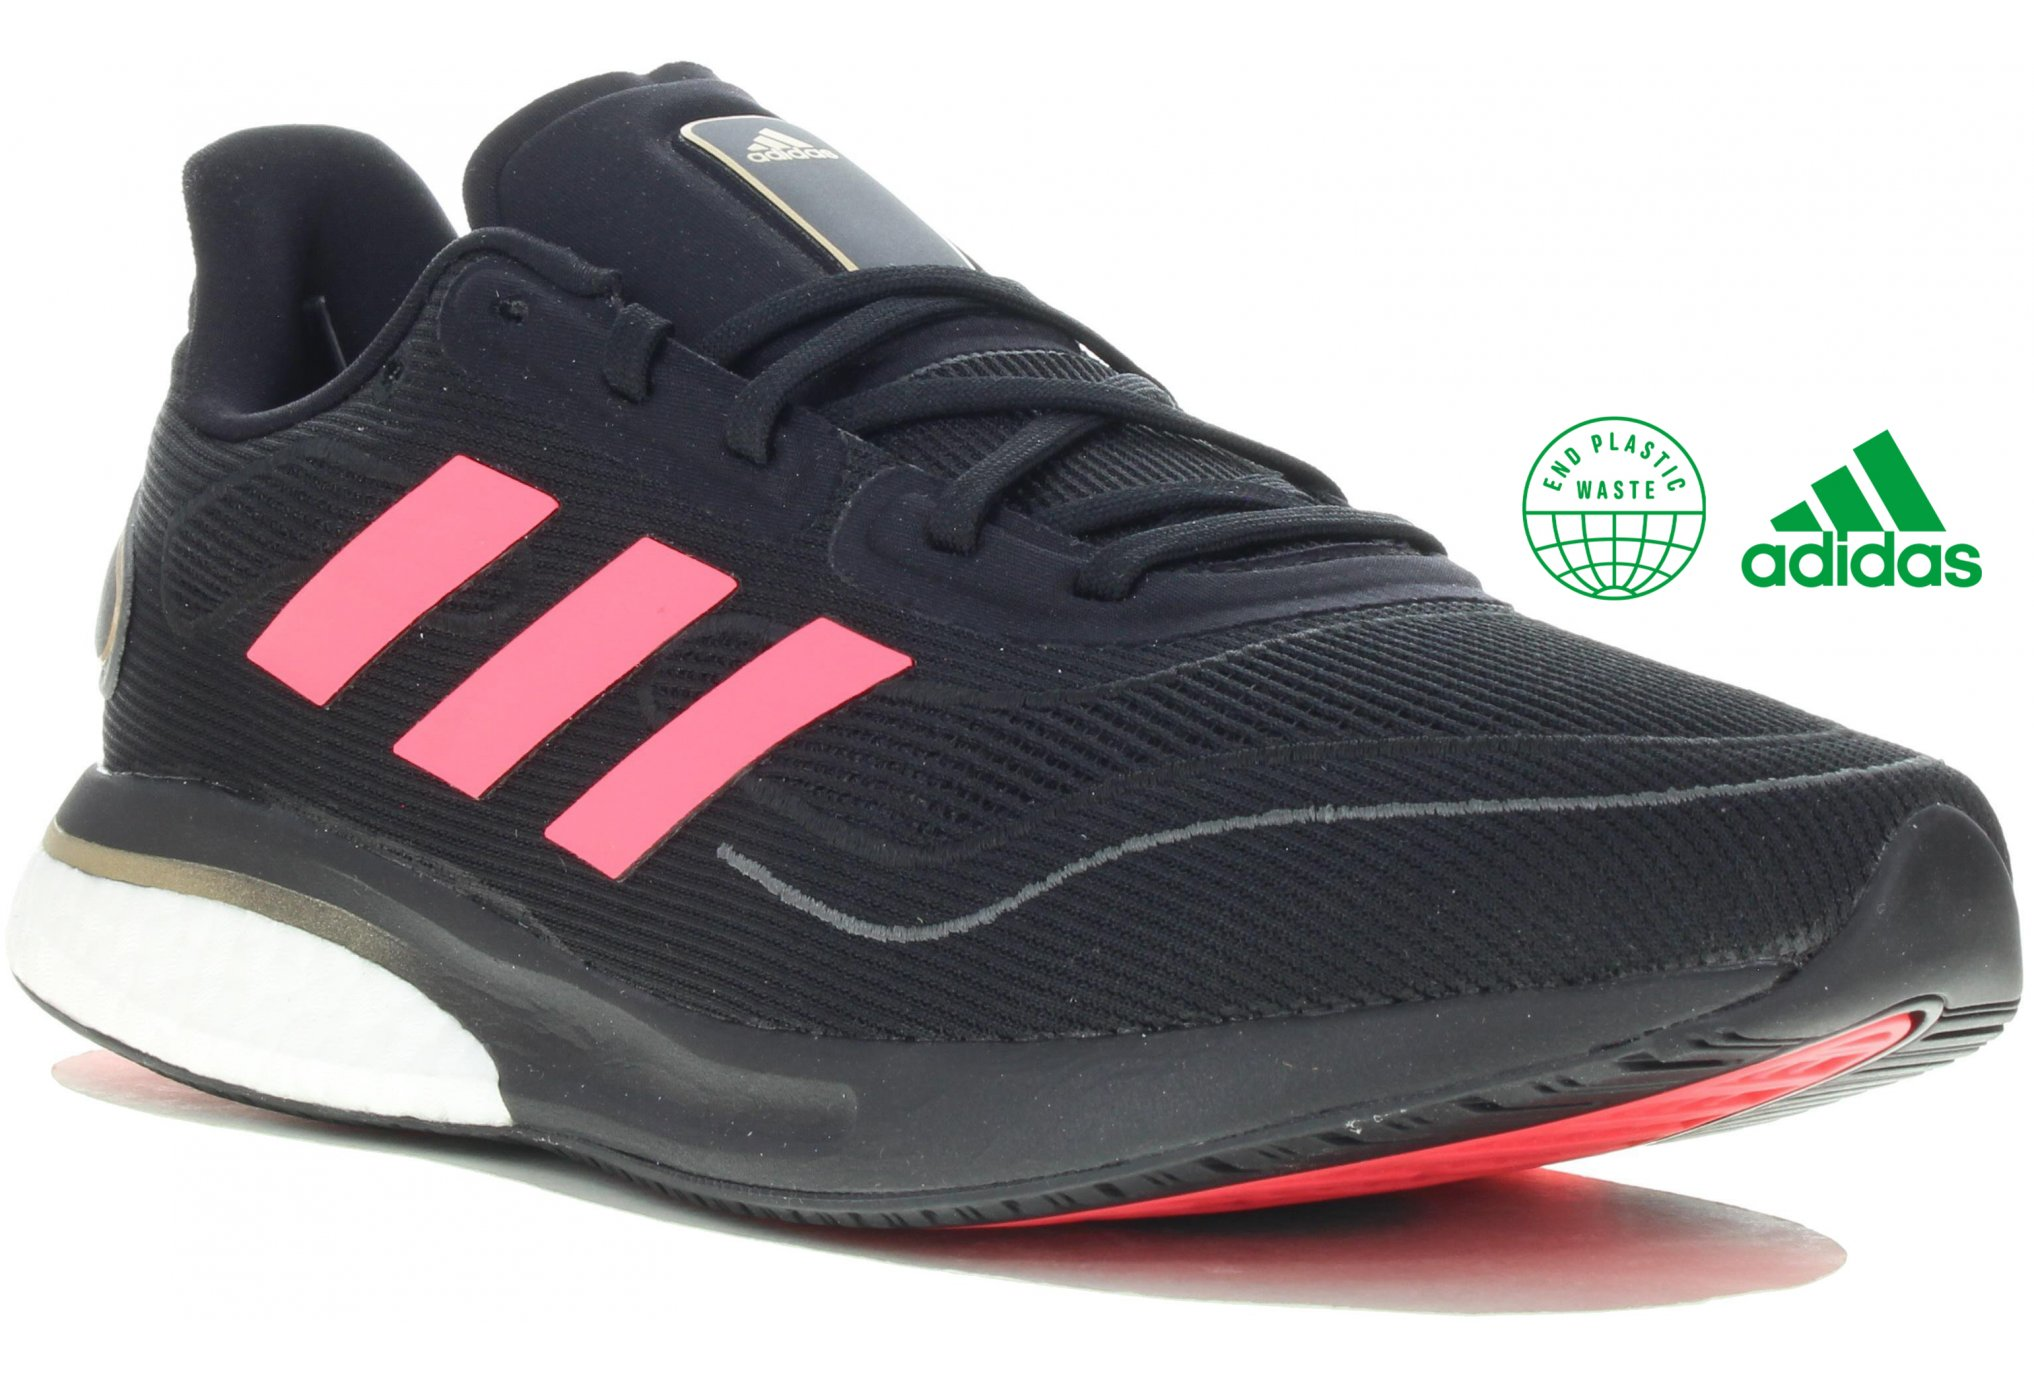 adidas Supernova Primegreen Chaussures homme